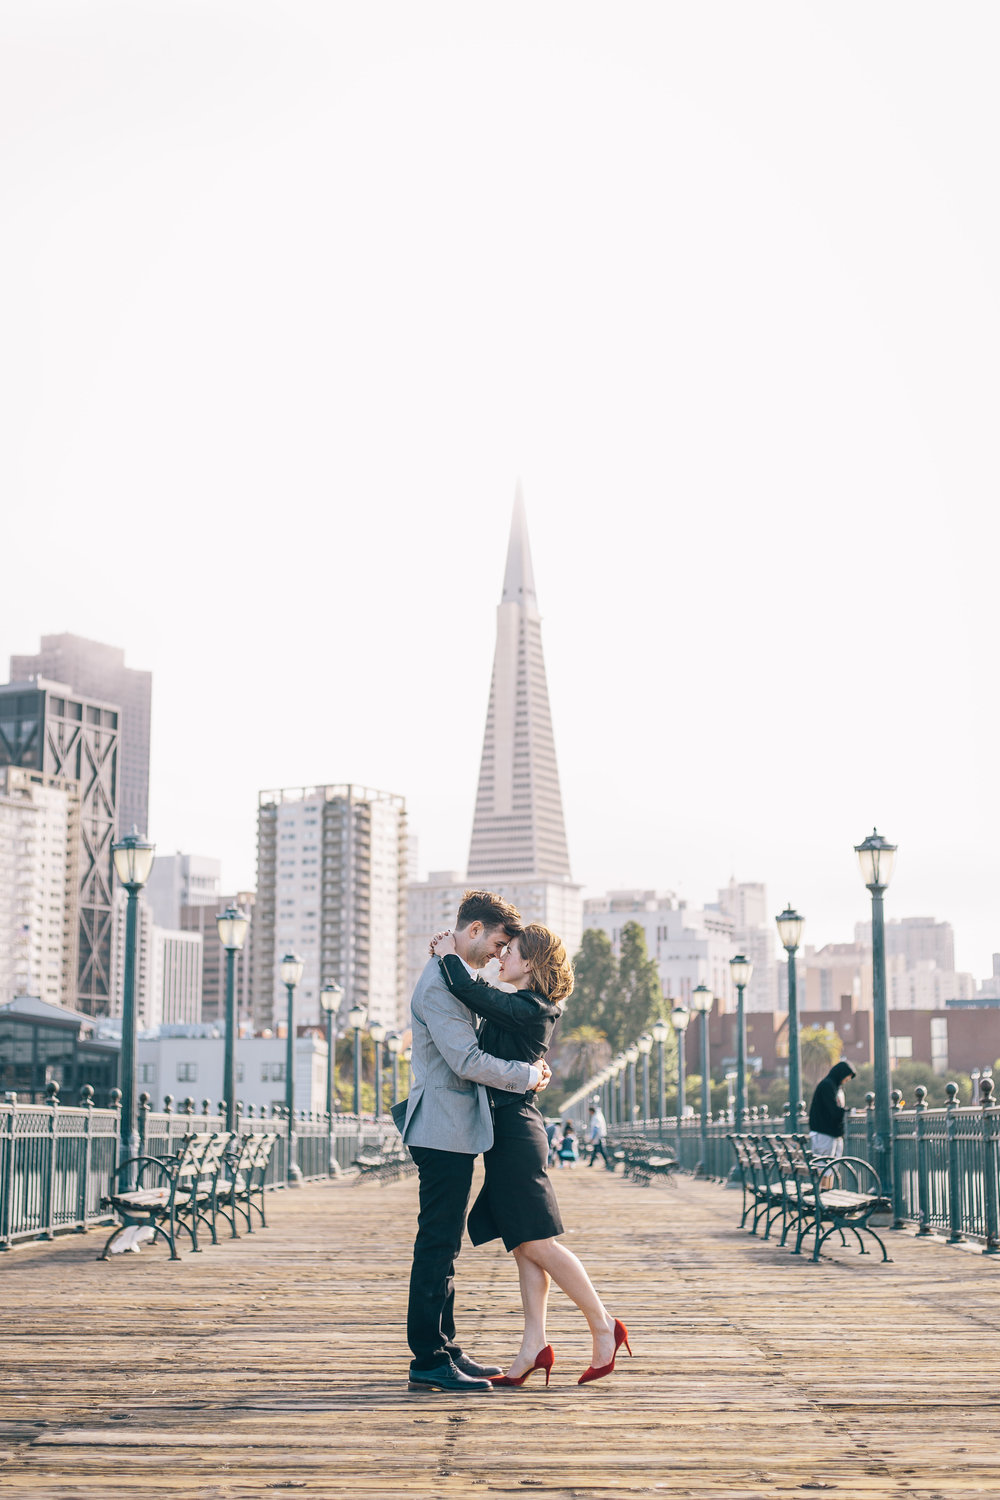 Pier 7 Engagement Photos by JBJ Pictures - Pre-wedding Photo Session in San Francisco (5).jpg